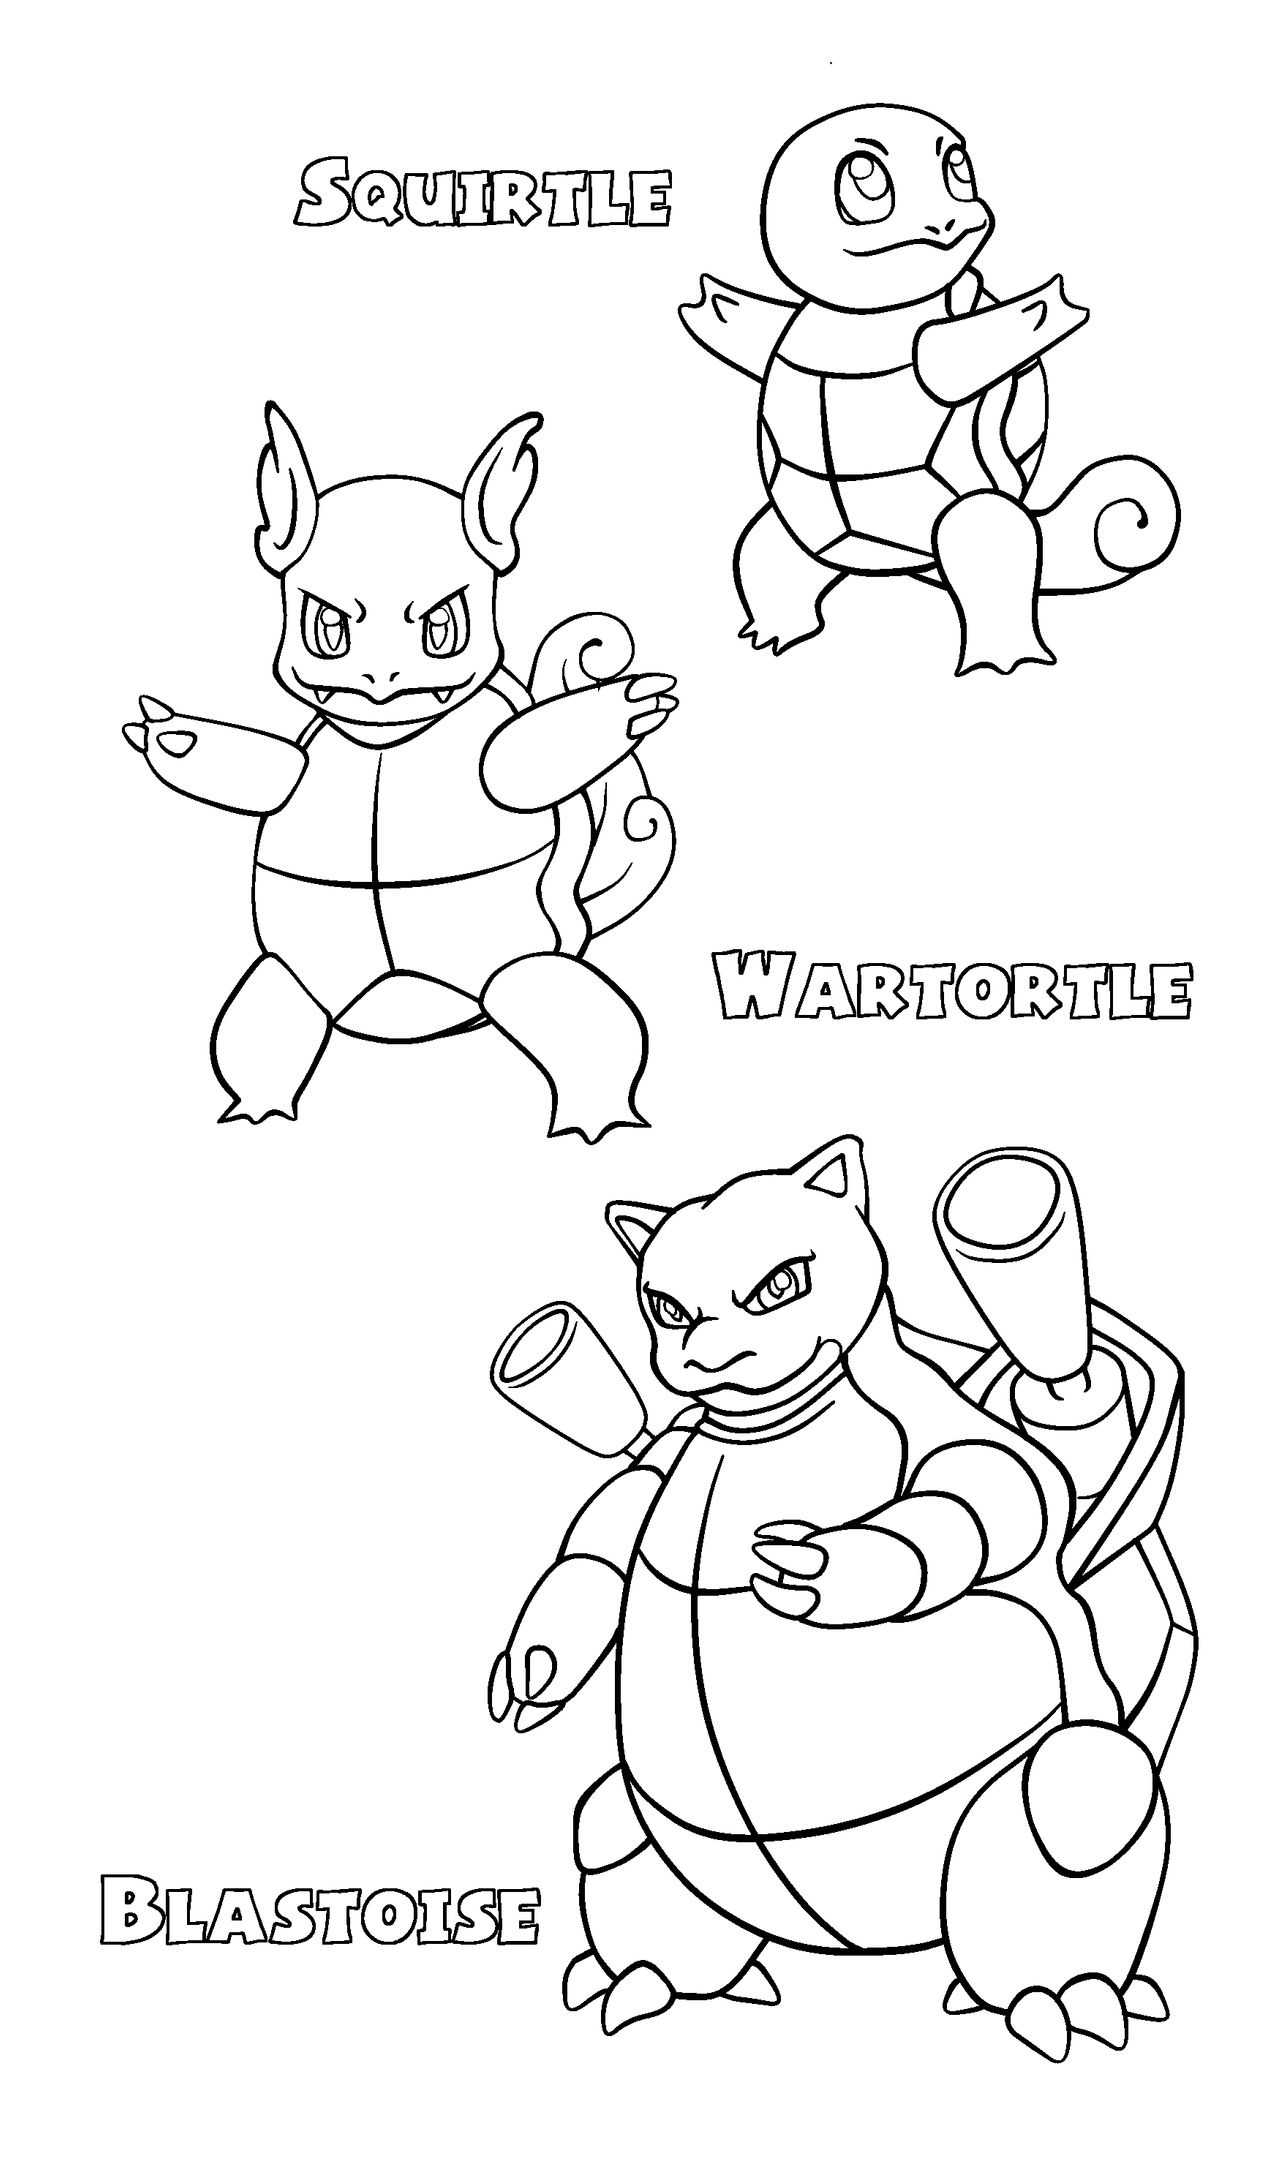 Squirtle Line Coloring Page By Madhuvati On Deviantart Pokemon Coloring Pages Pokemon Coloring Coloring Pages Winter